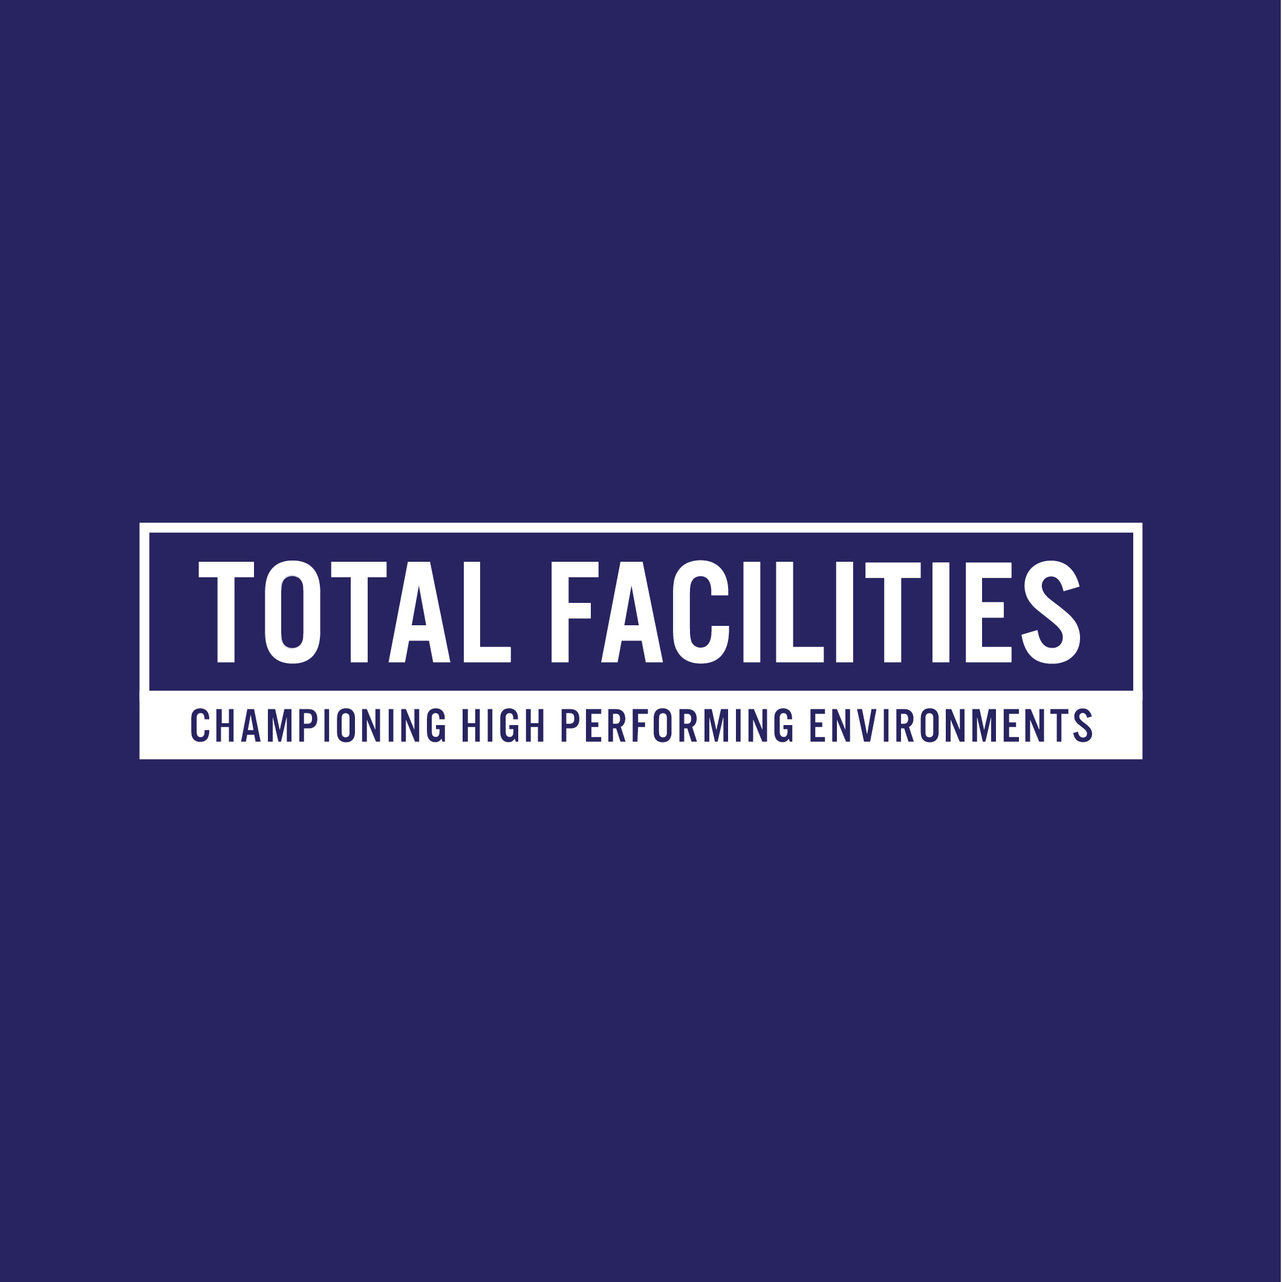 Total Facilities